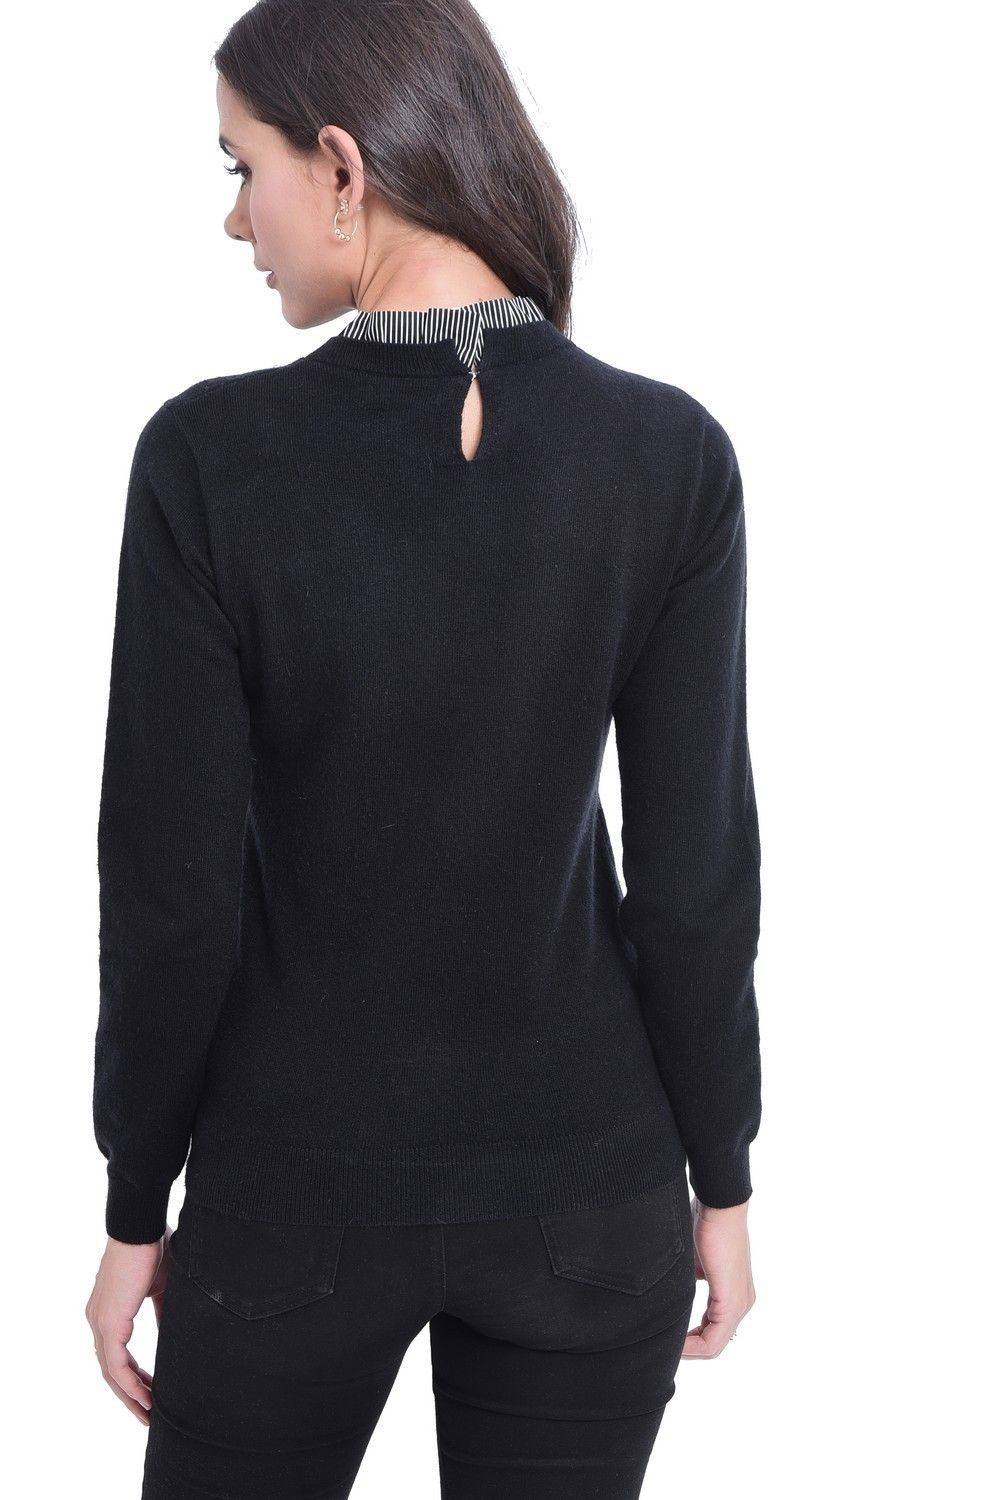 C&JO High Neck Striped Collar Sweater in Black